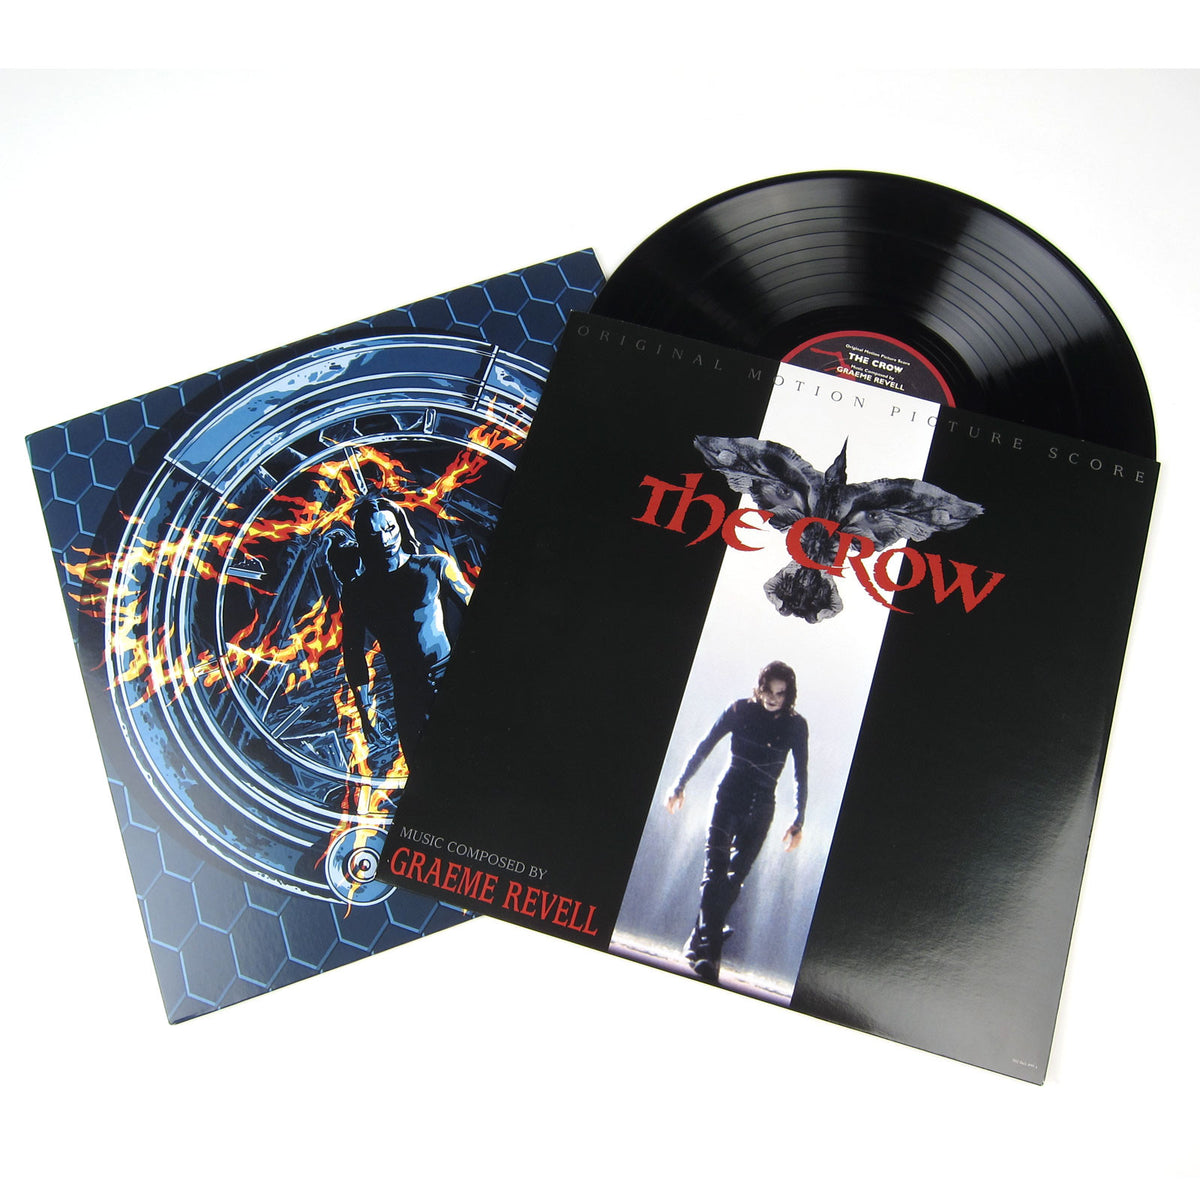 Graeme Revell: The Crow Original Motion Picture Score Vinyl LP